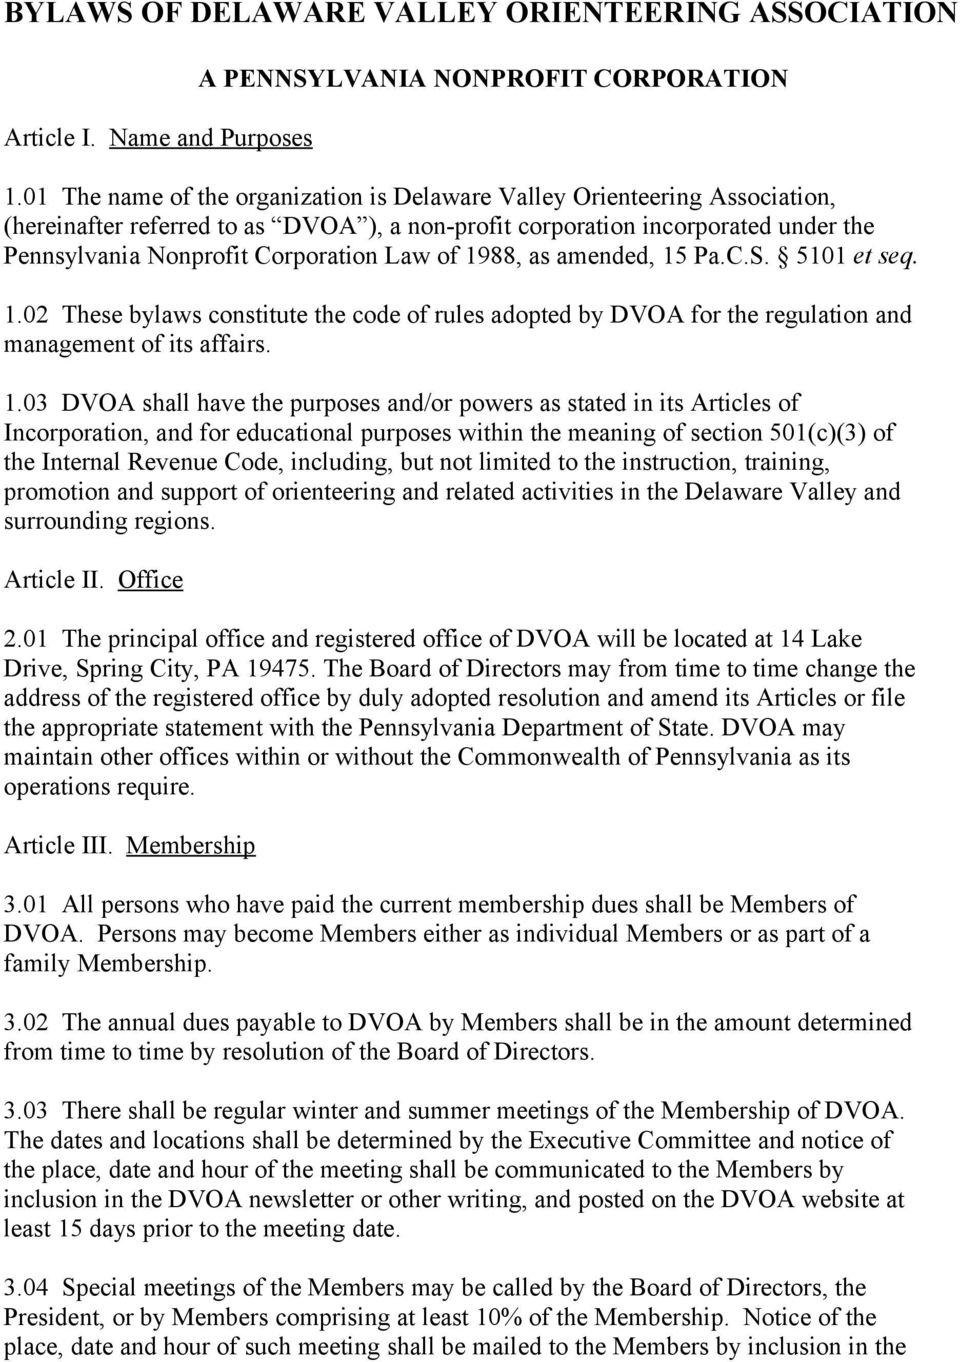 of 1988, as amended, 15 Pa.C.S. 5101 et seq. 1.02 These bylaws constitute the code of rules adopted by DVOA for the regulation and management of its affairs. 1.03 DVOA shall have the purposes and/or